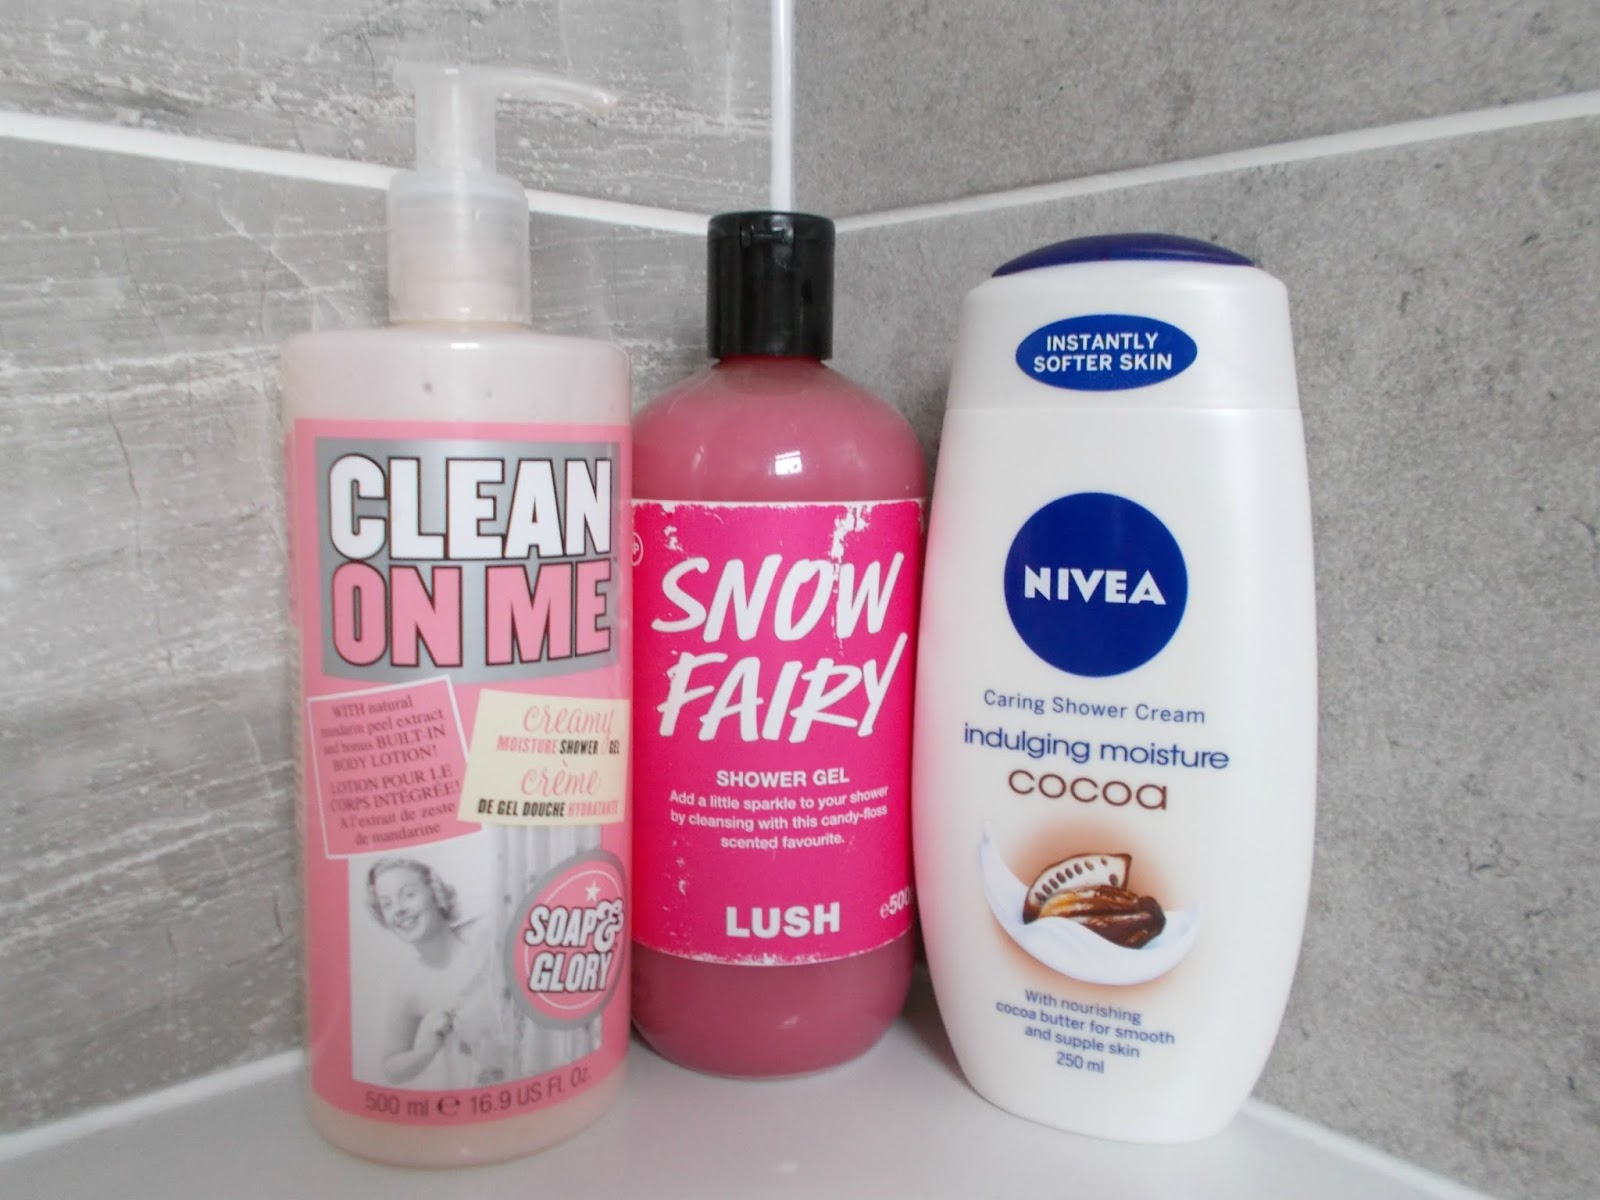 shower gel soap and glory clean on me lush snow fairy nivea indulging moisture cocoa review